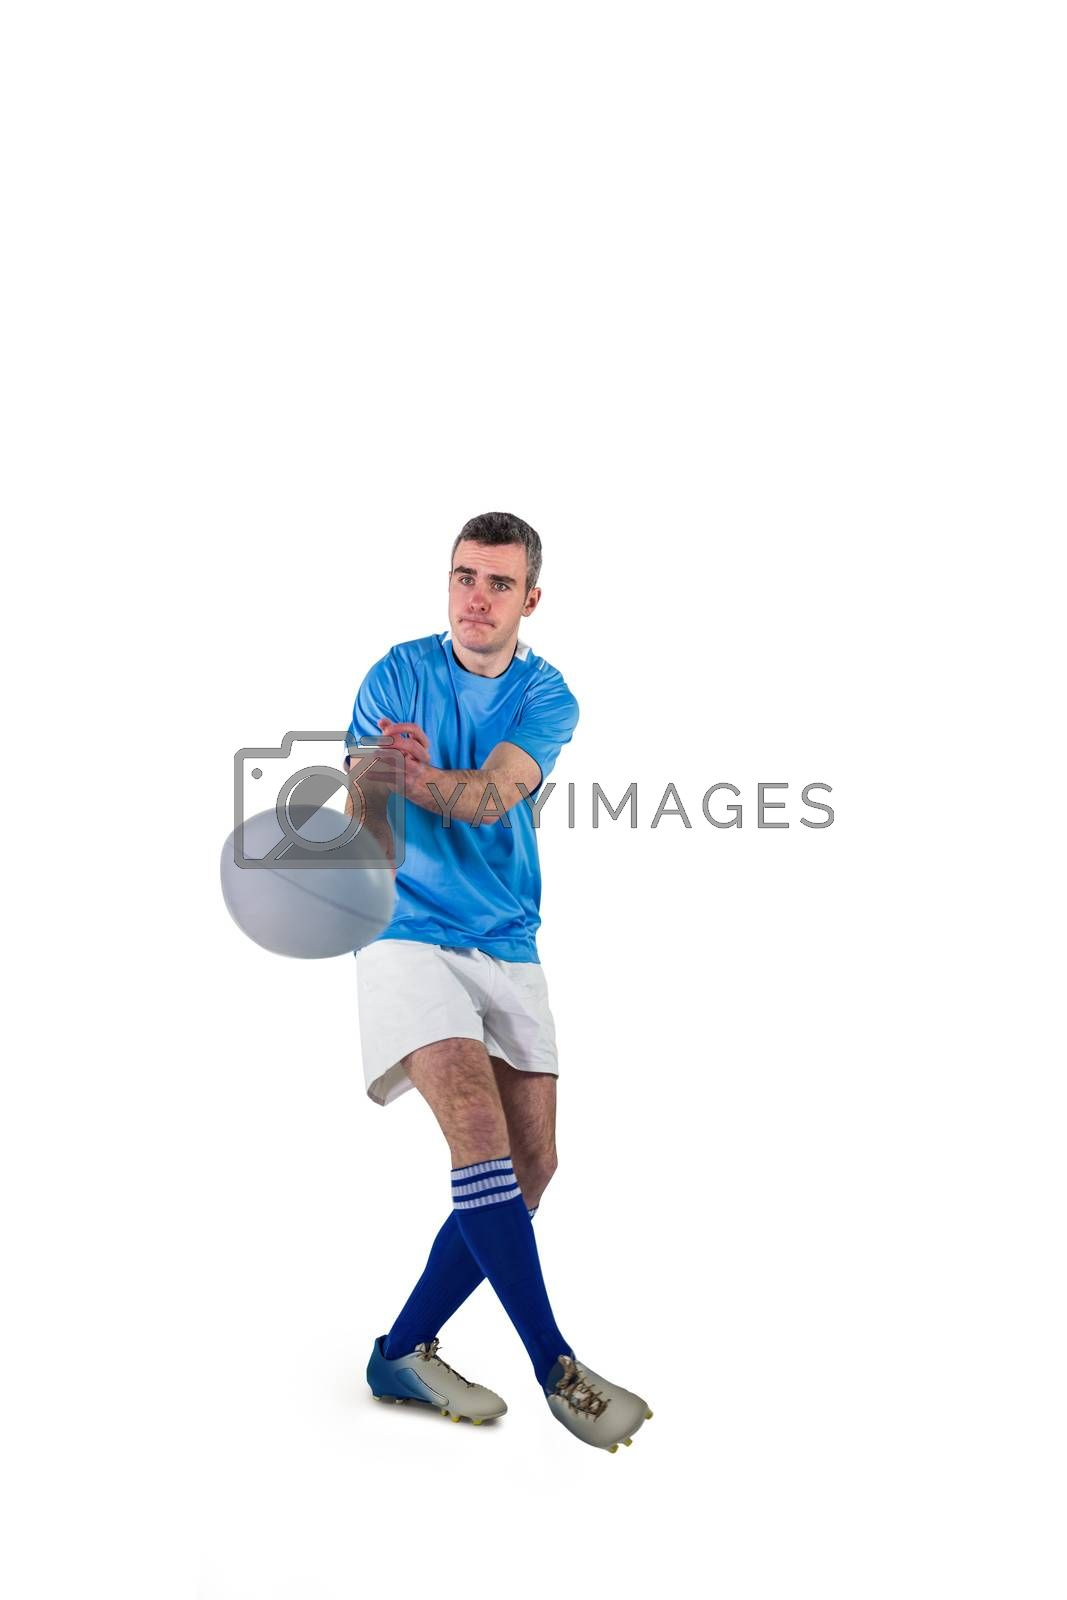 Royalty free image of Rugby player throwing a rugby ball by Wavebreakmedia